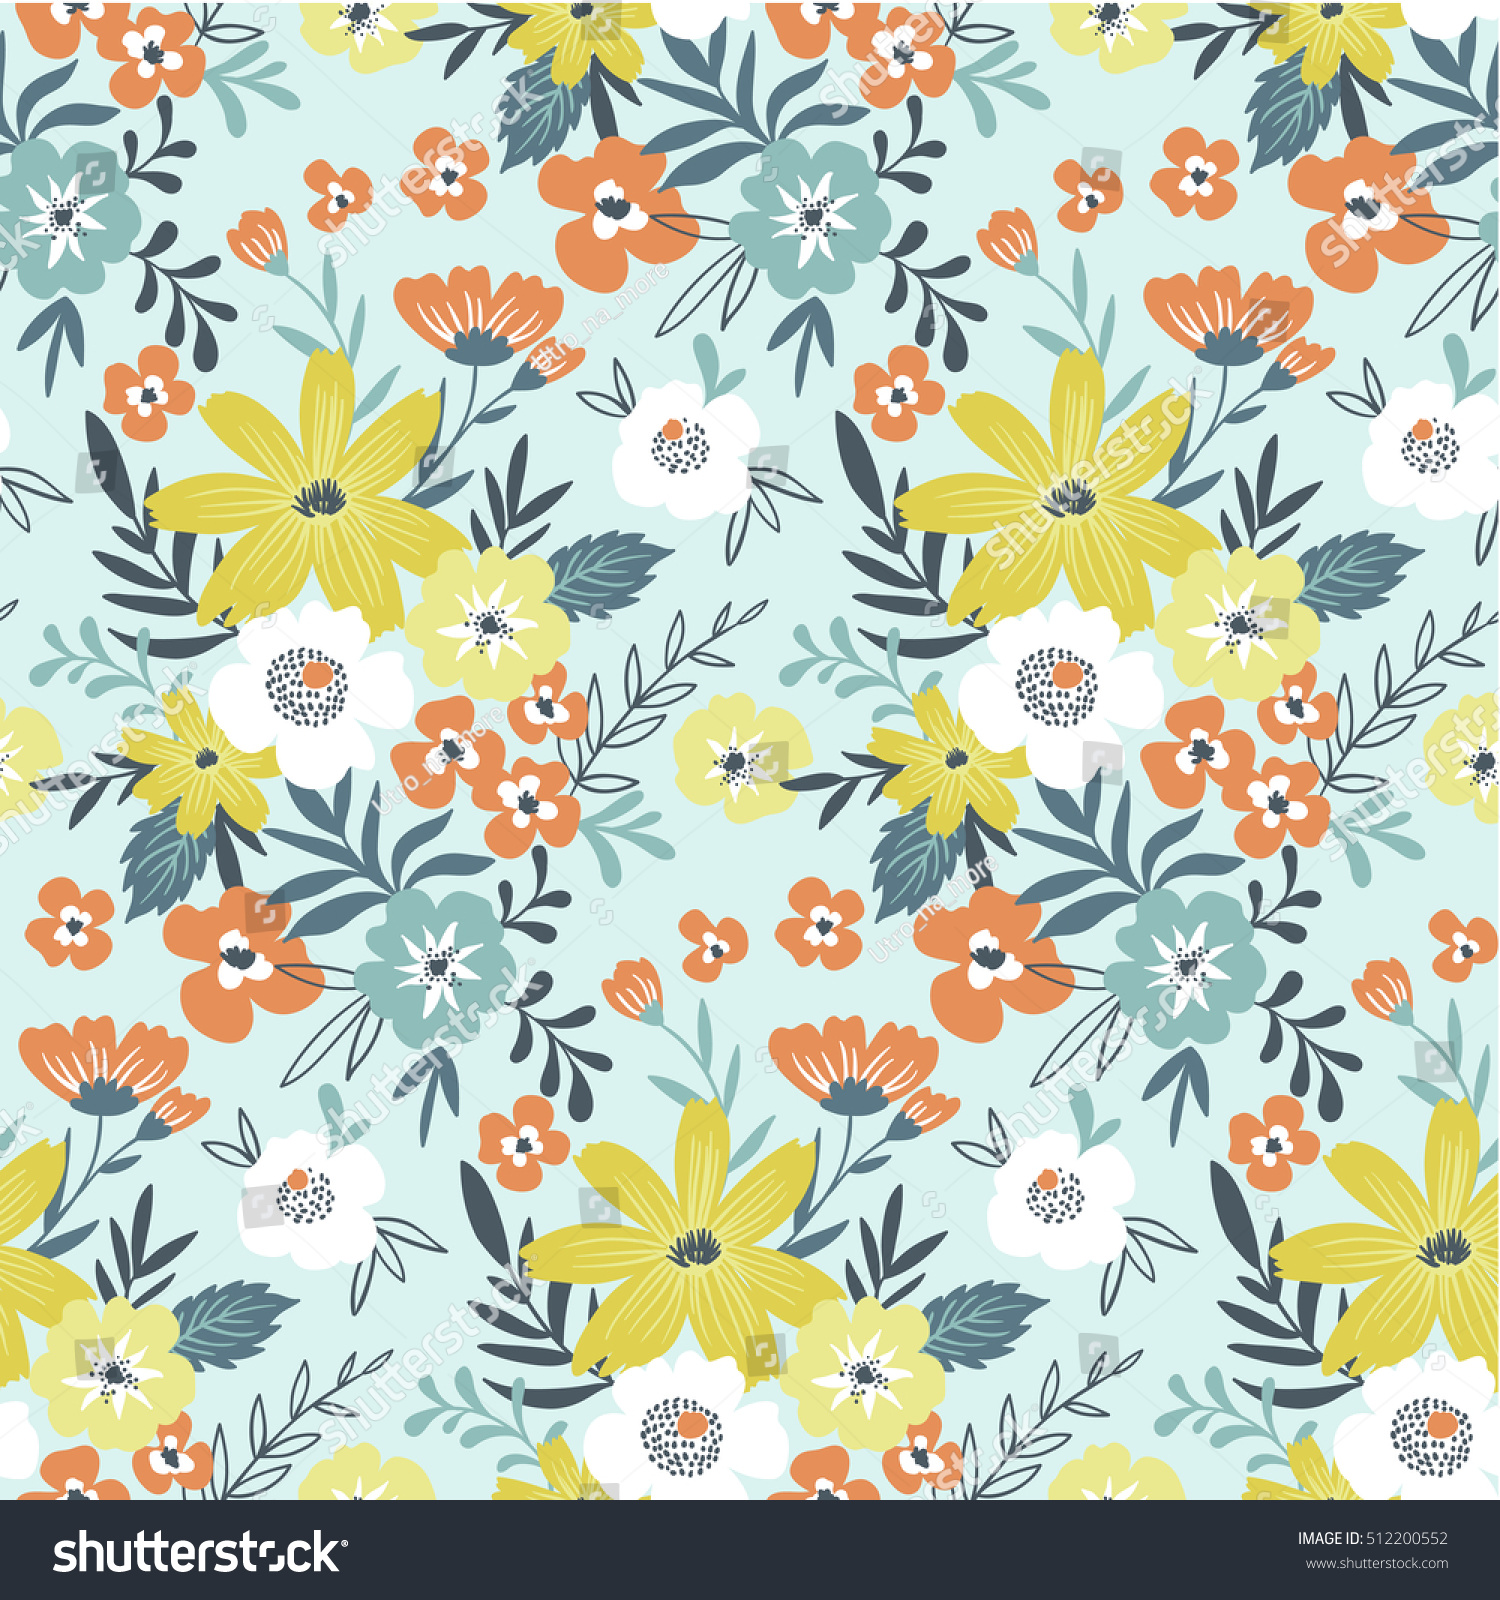 2015 Ditsy Floral Design: Trendy Seamless Floral Ditsy Pattern Fabric Stock Vector